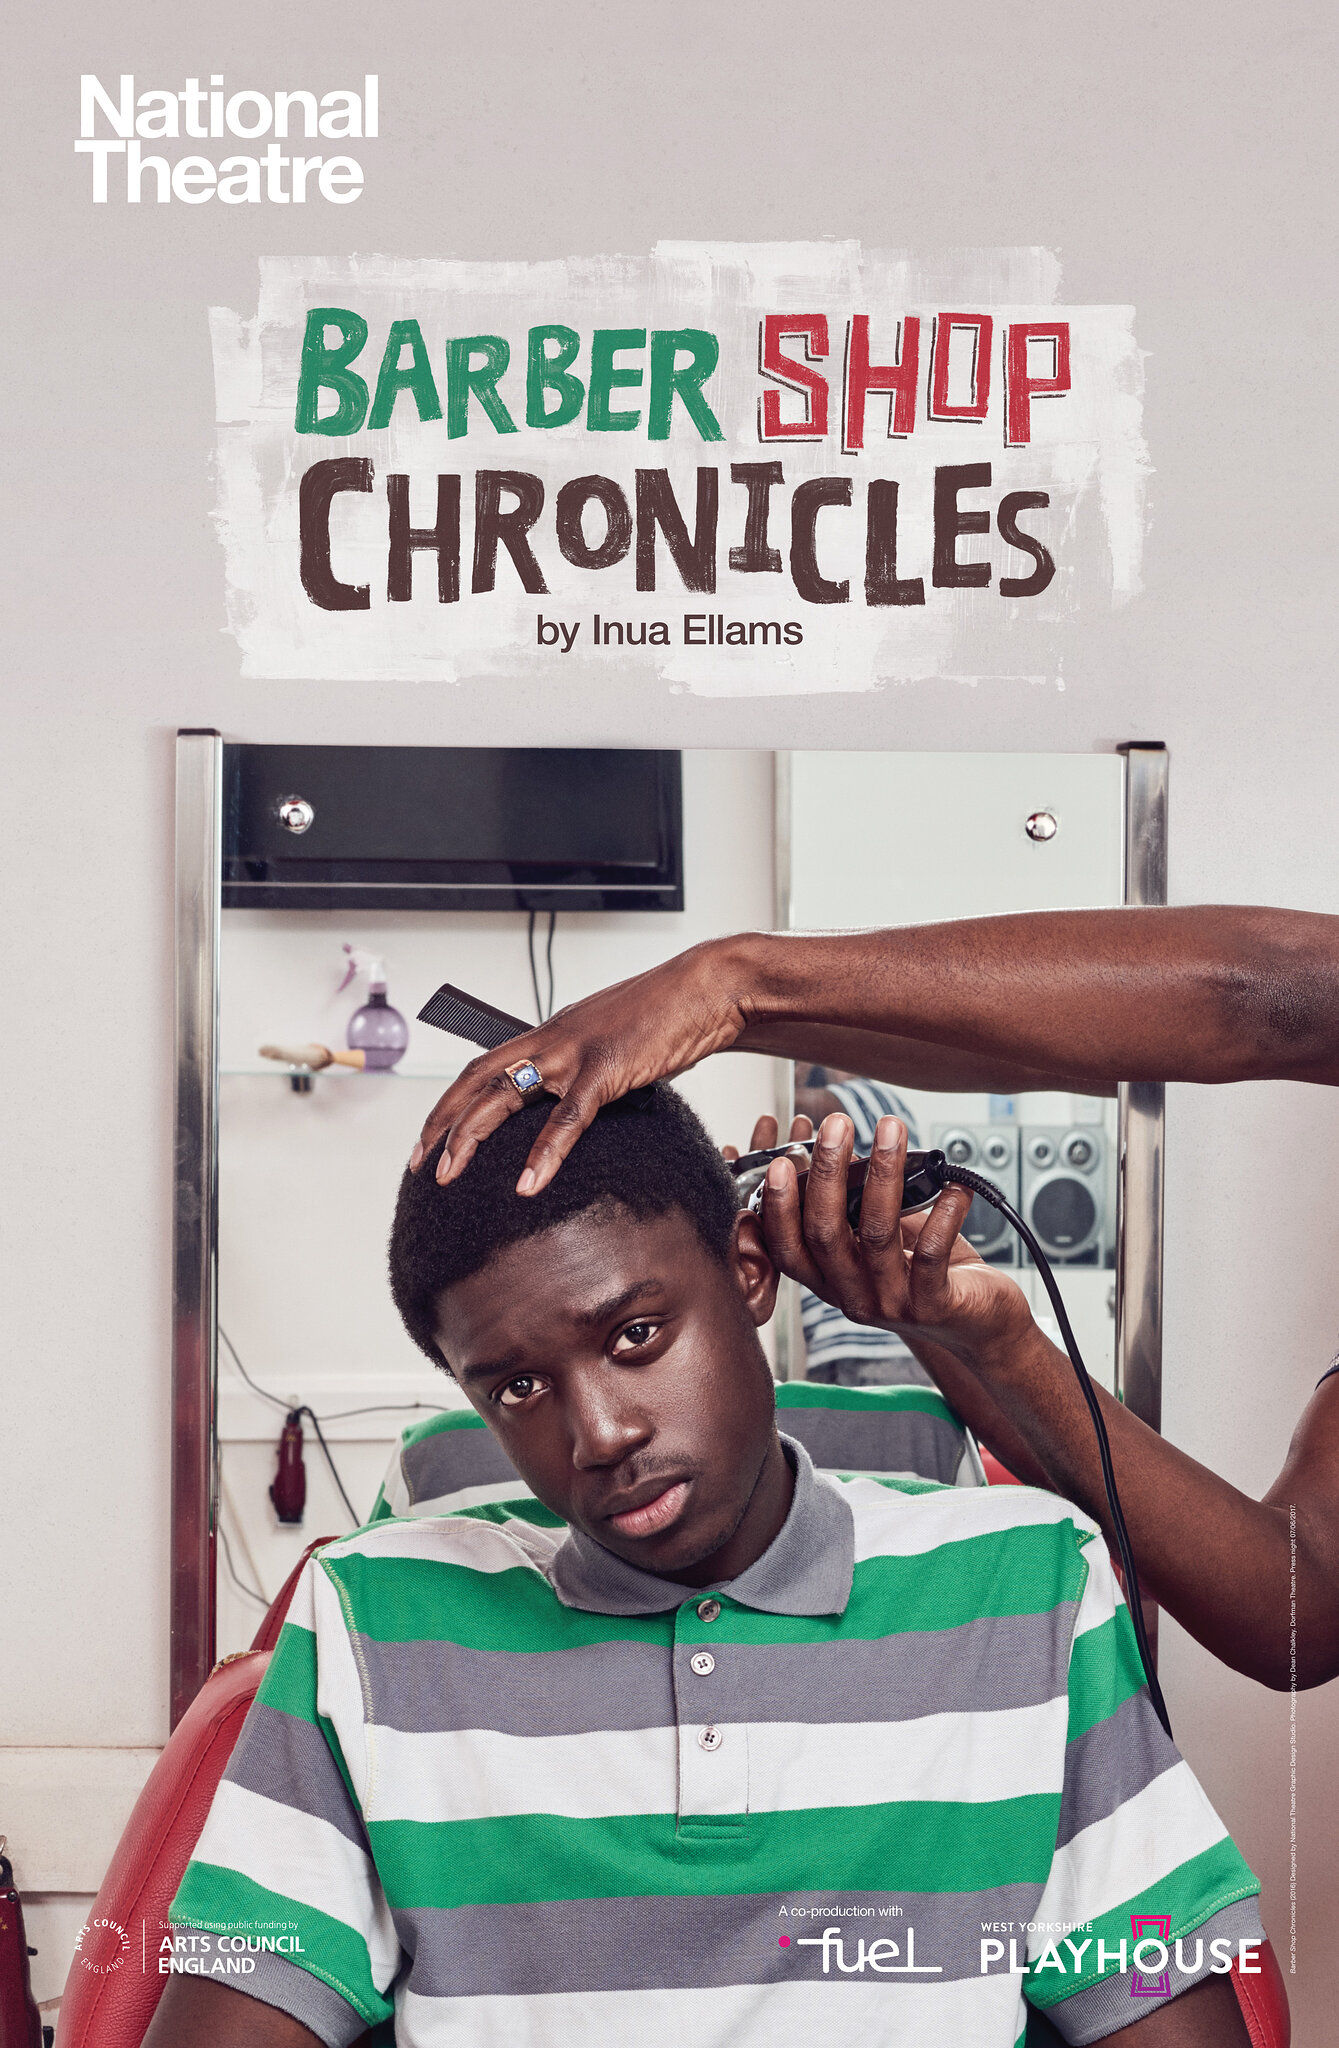 Barber Shop Chronicales